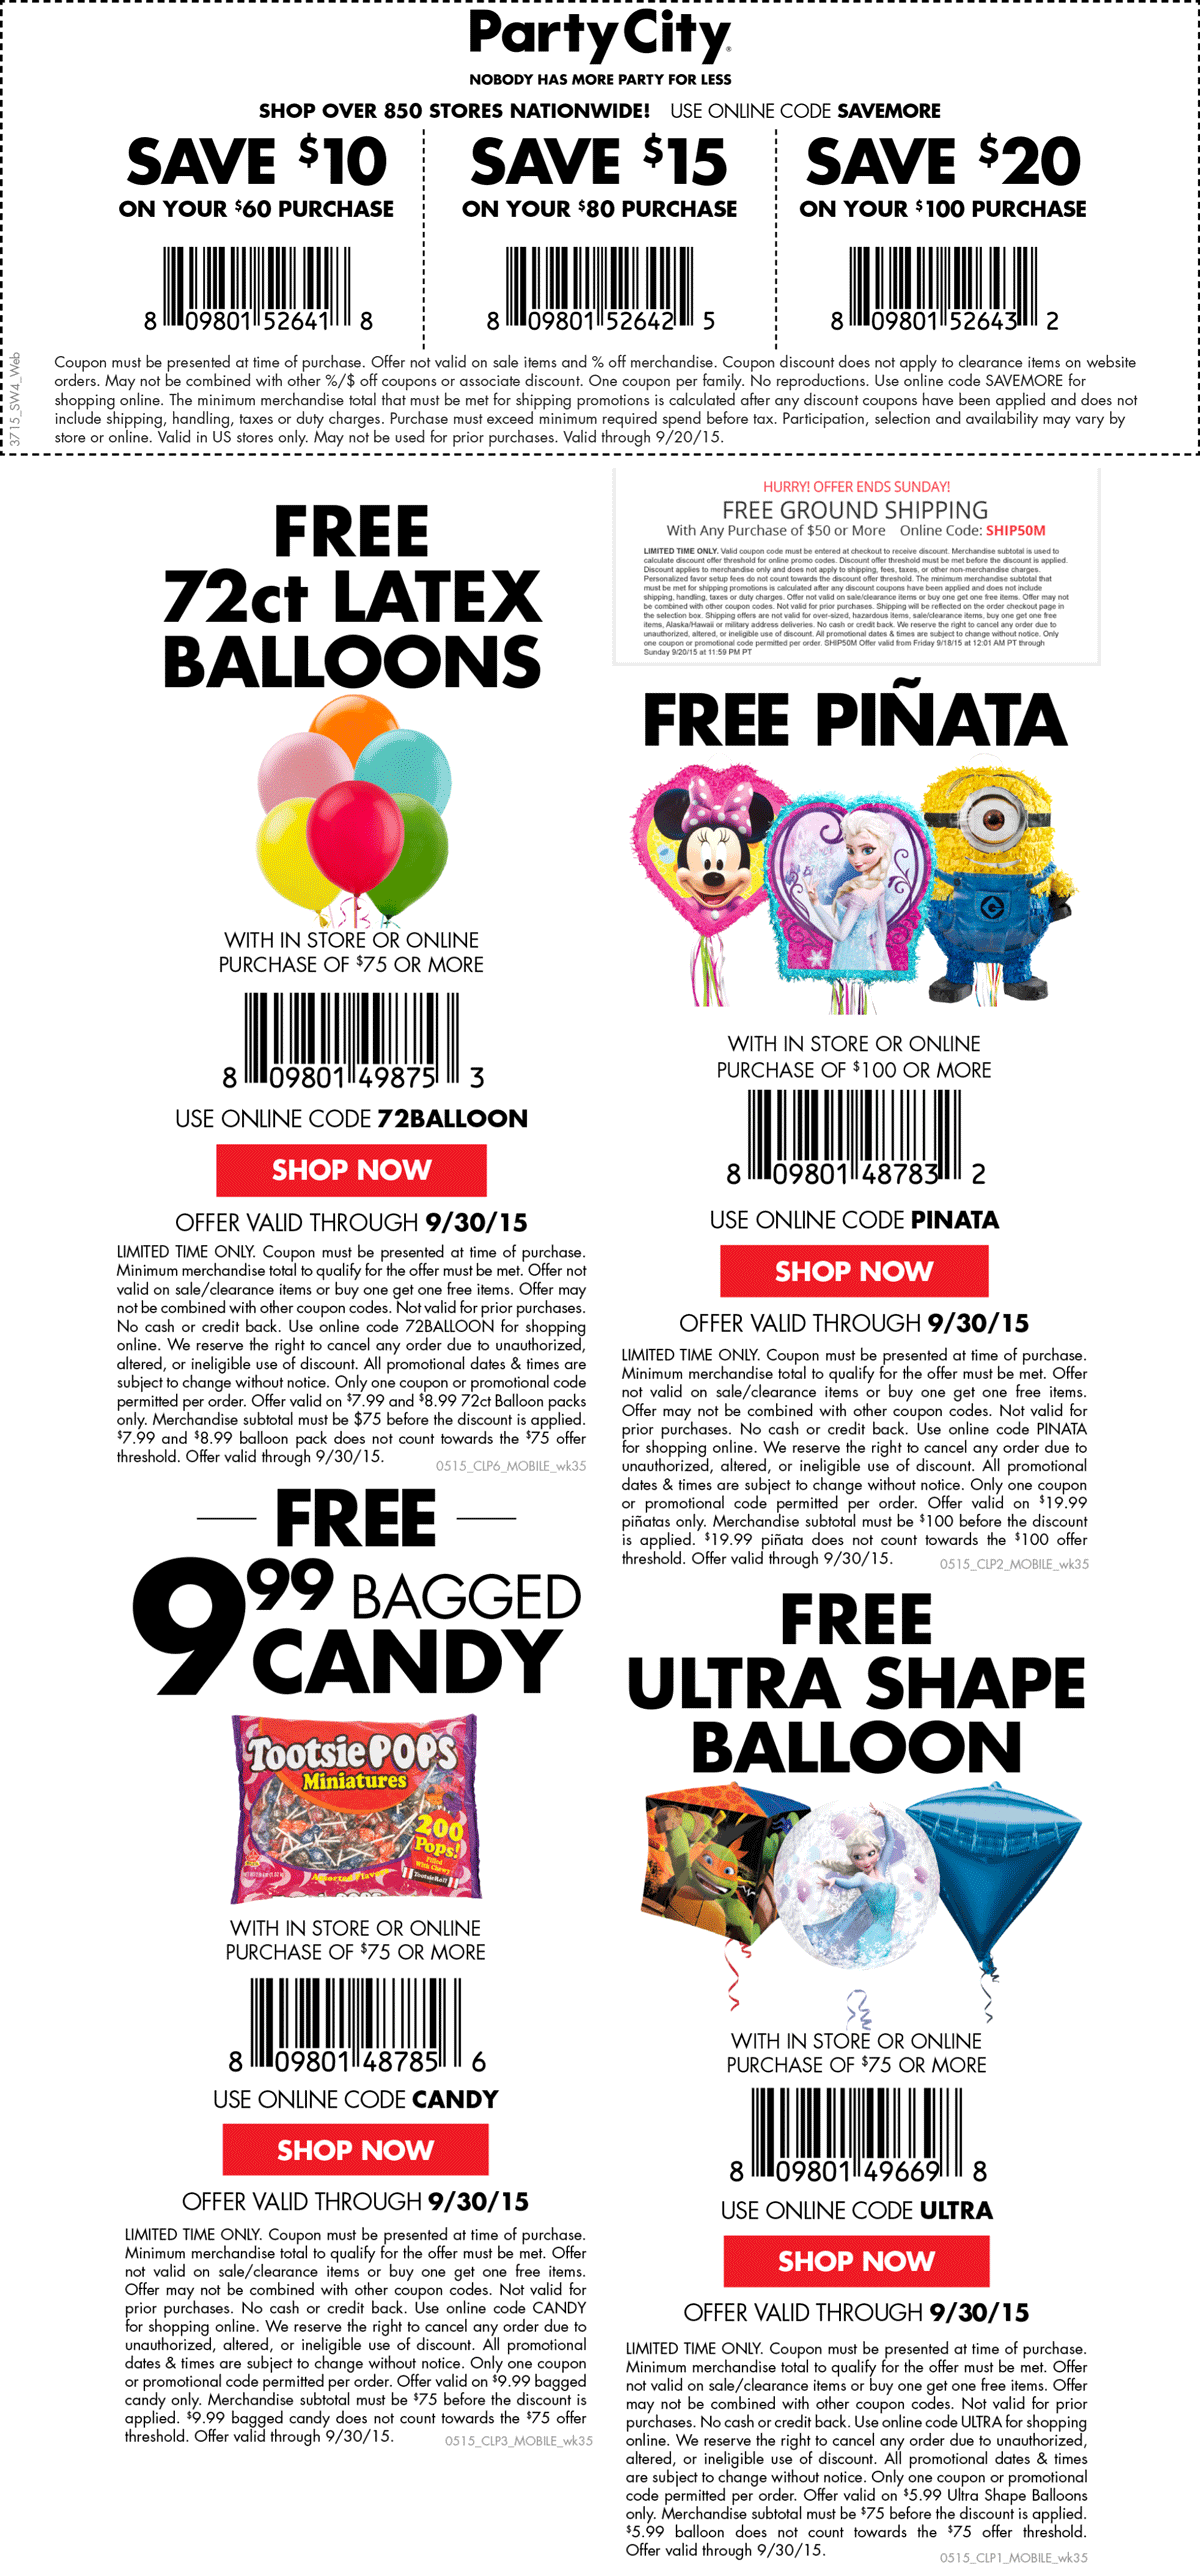 Party City Coupon March 2017 $10 off $60 + various freebies at Party City, or online via promo code SAVEMORE